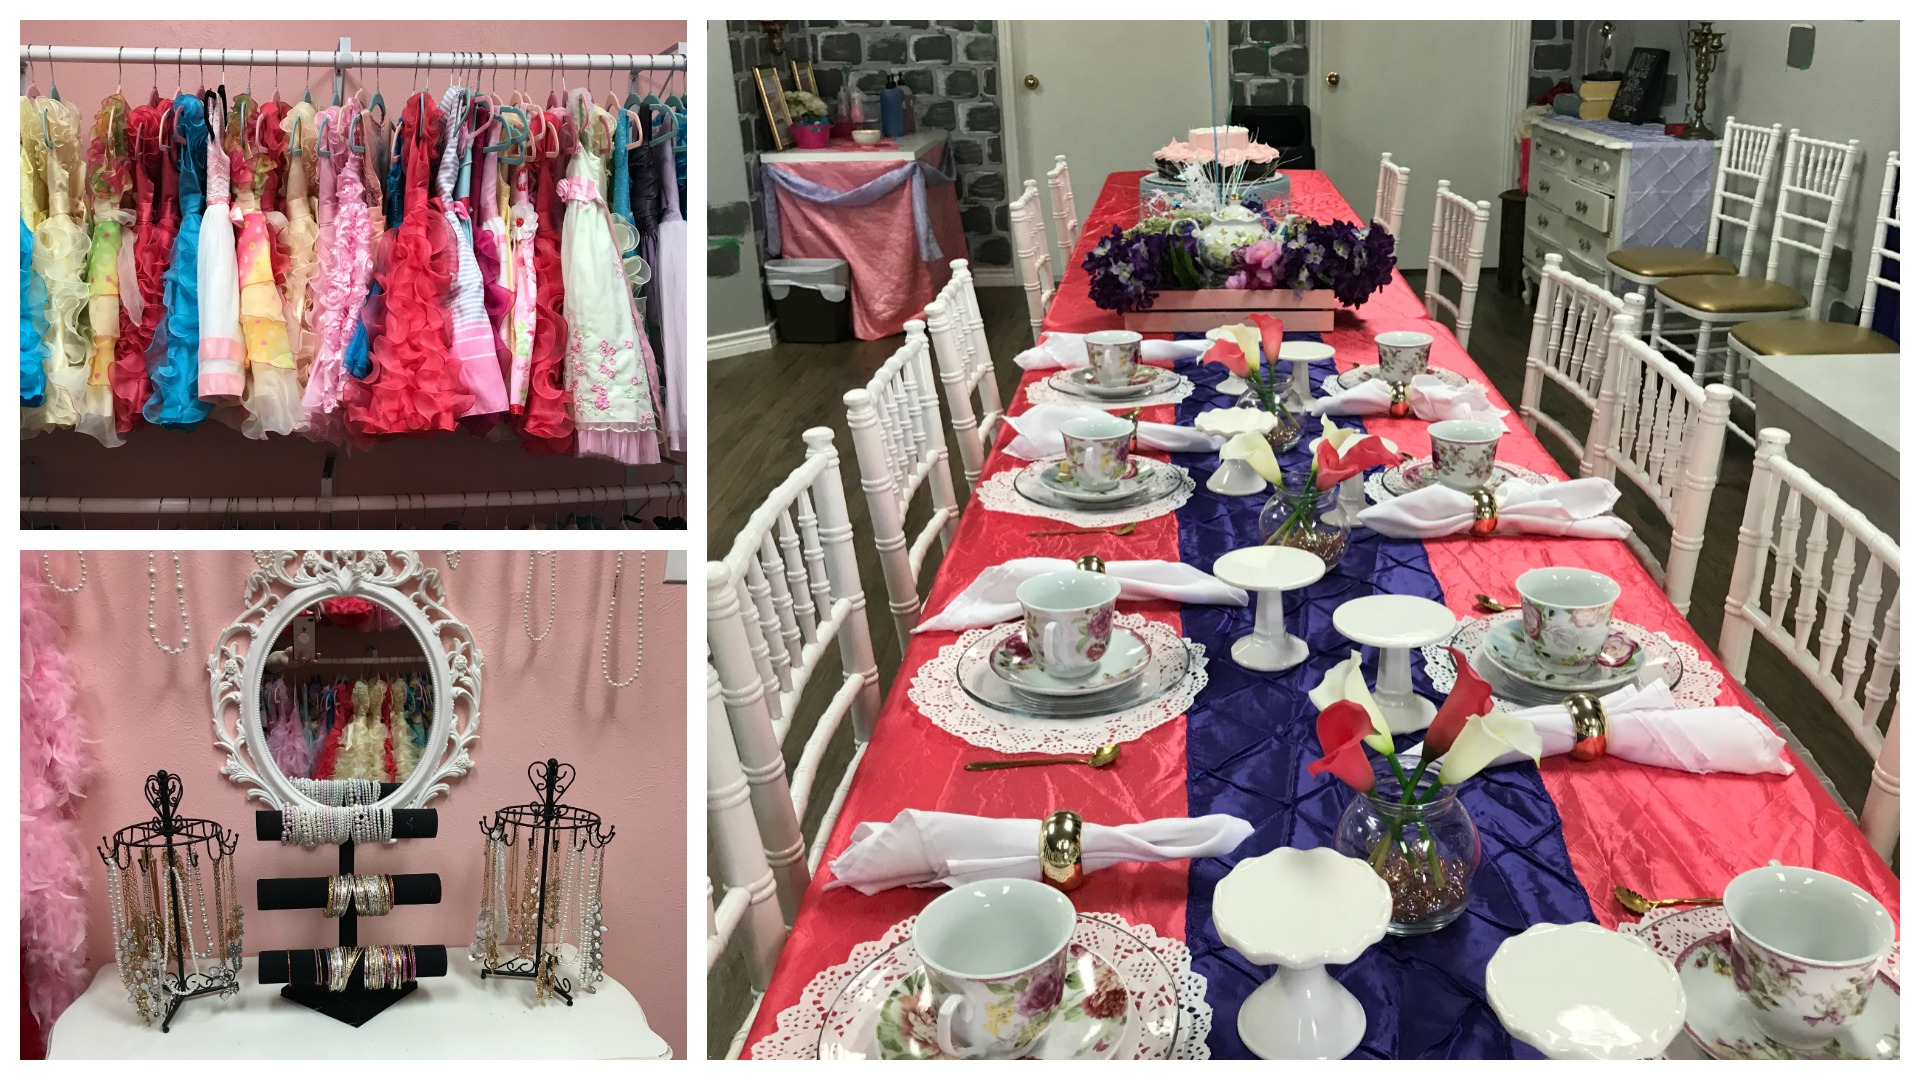 Tiaras and Tea Parties is the perfect venue for your little princess! // The Ultimate List of Kid-Friendly Party Venues in Austin - Over 50 birthday party venues in Austin for babies, toddlers, and preschoolers sorted by location and price. Plus an interactive map to find your closest-to-home options. #austintexas #atx #austintx